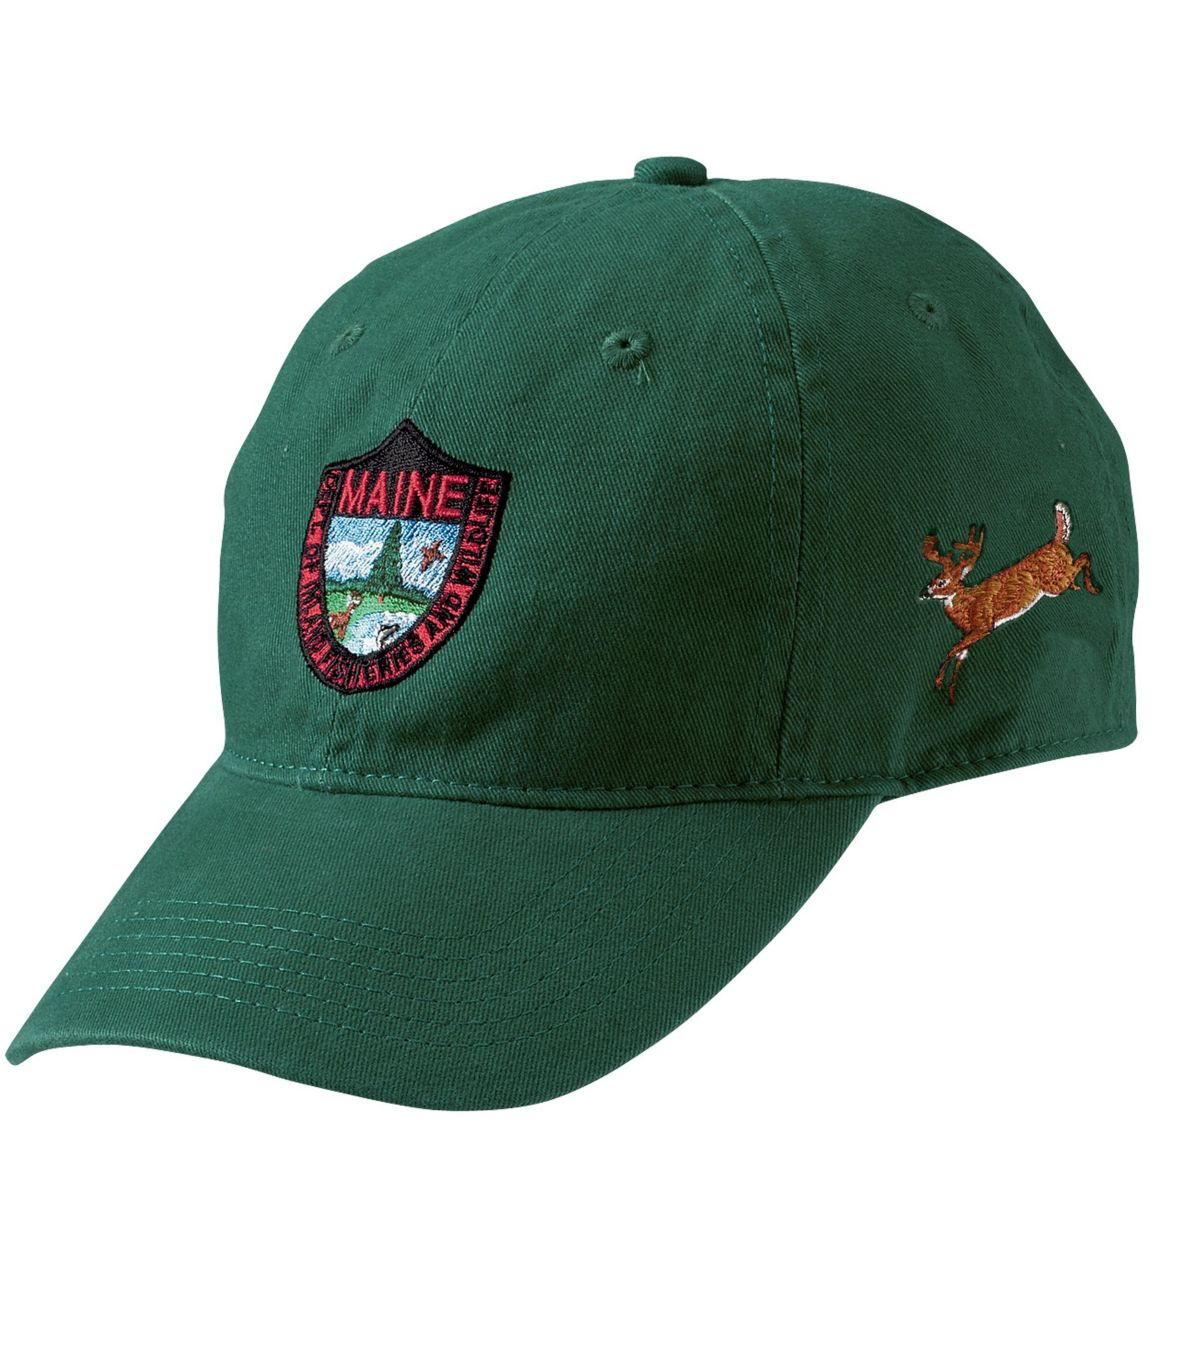 Adults' MIF&W Baseball Cap, Deer